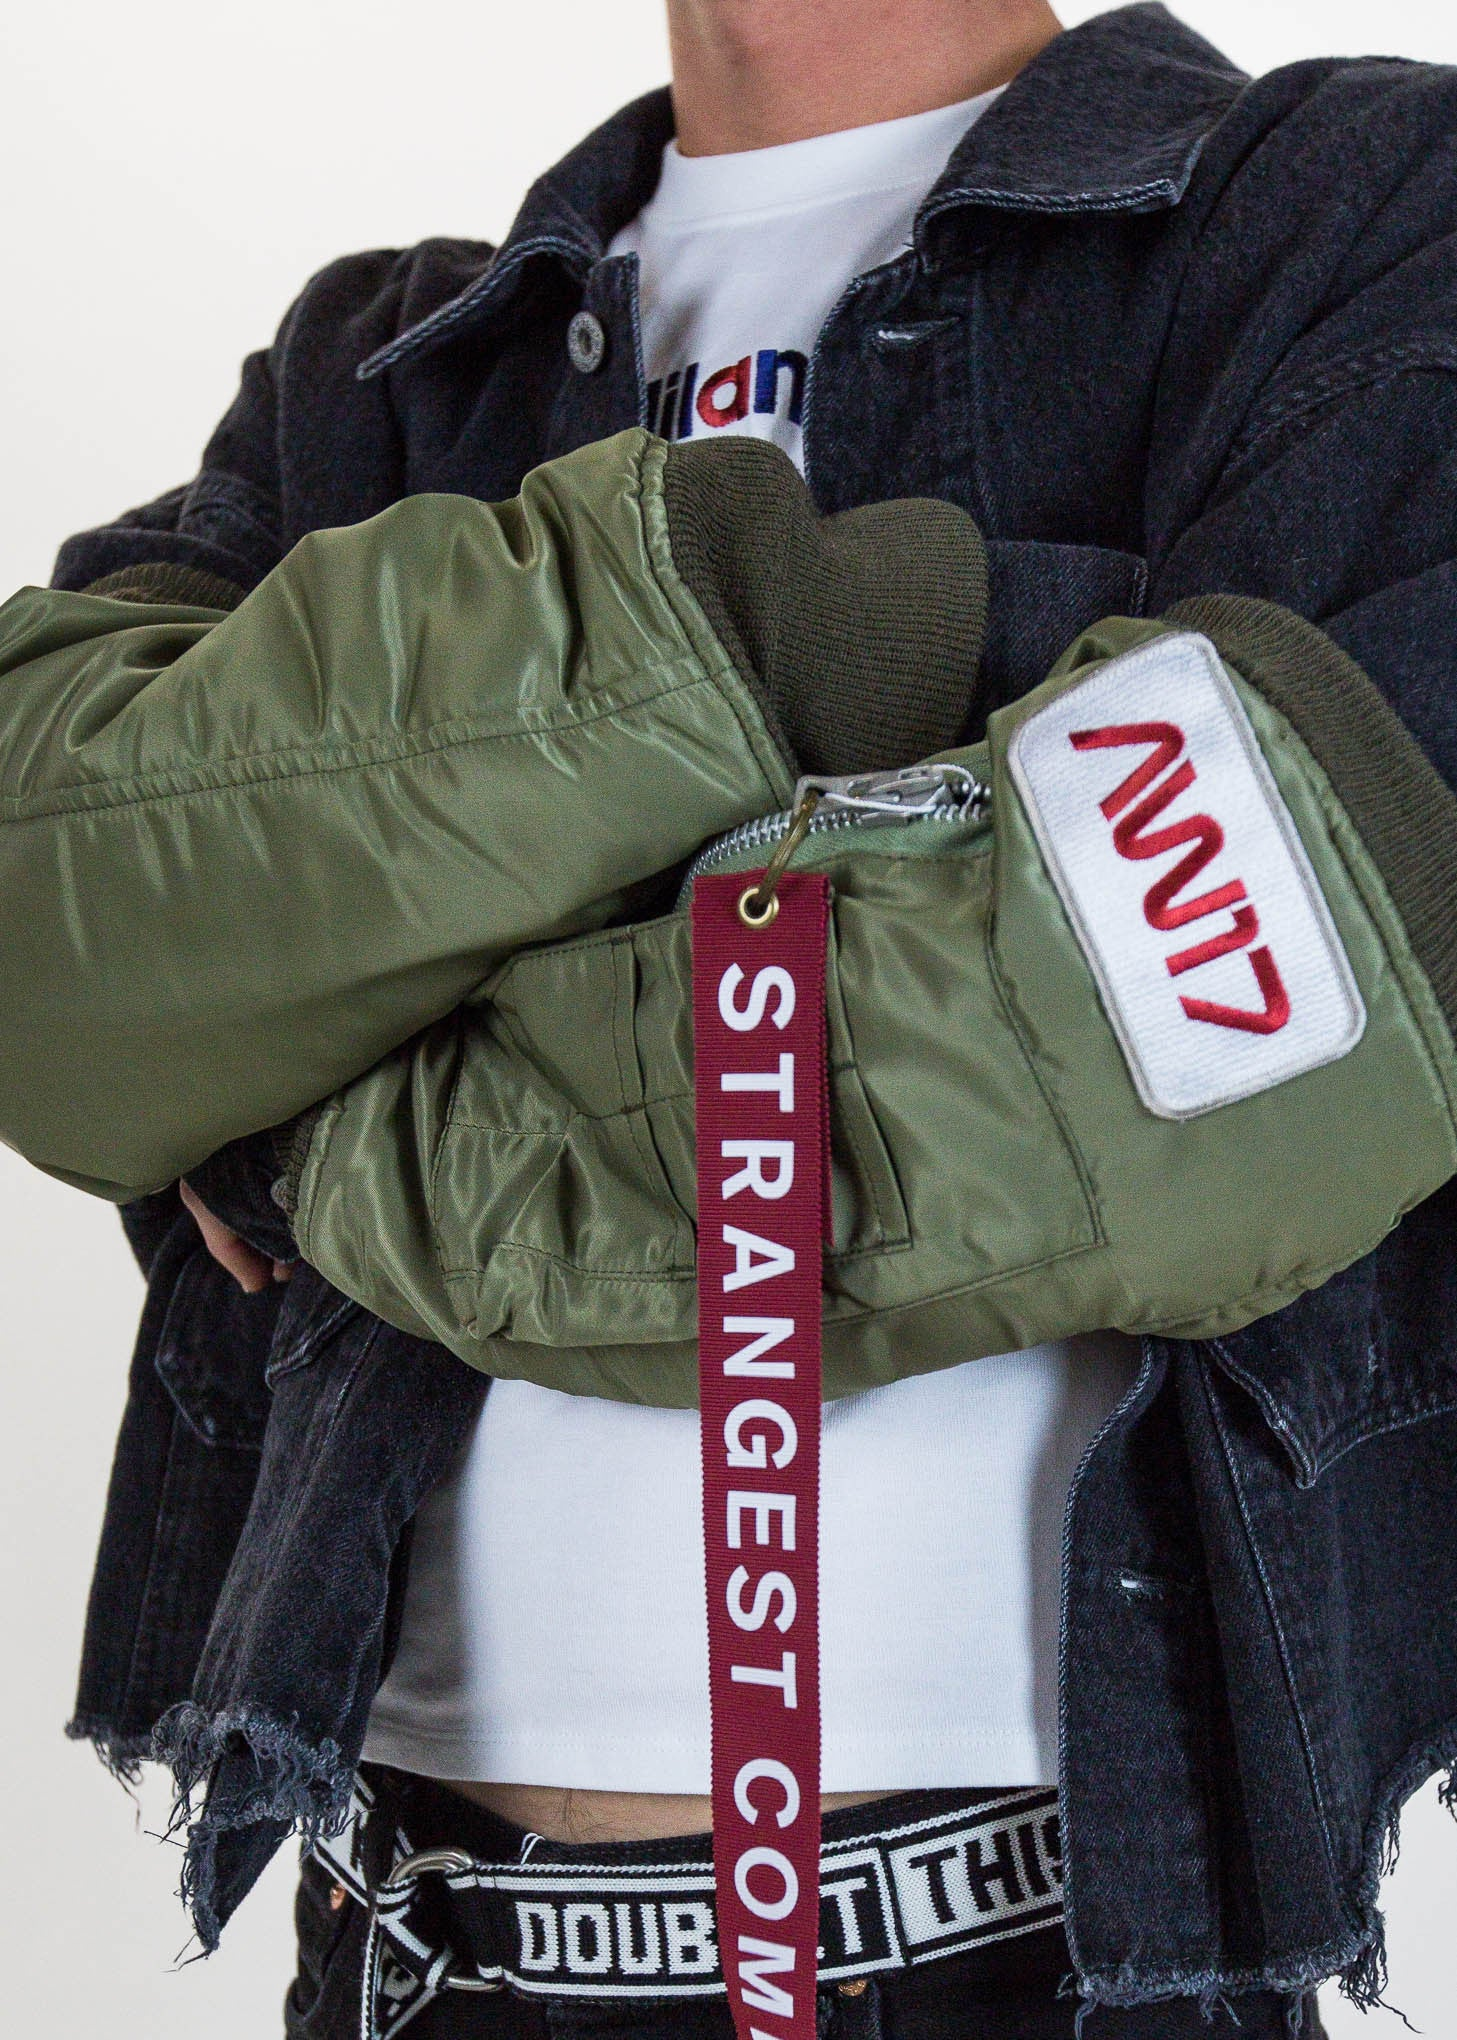 Khaki Arm Warmers of Bomber Jacket